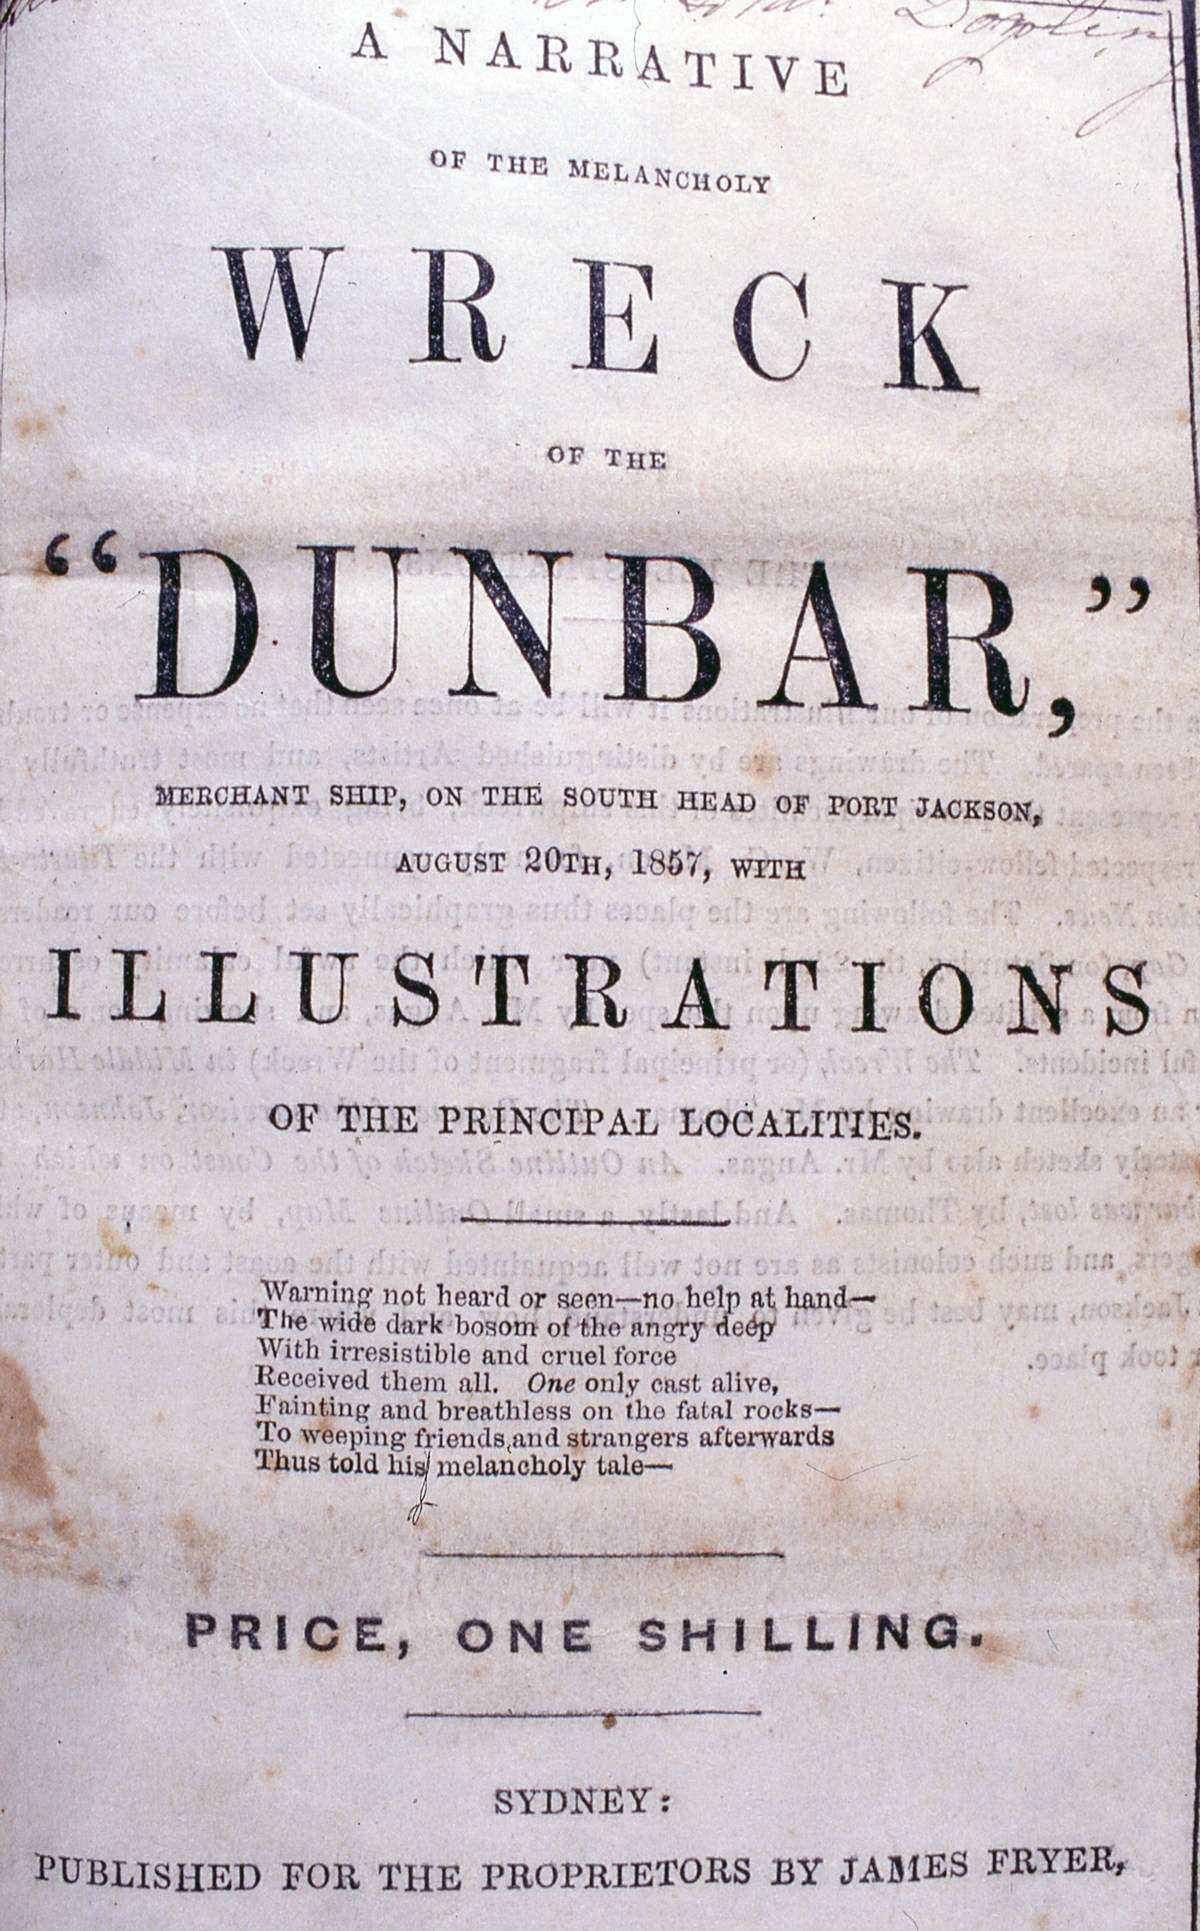 """<em>A Narrative of the Wreck of the</em> Dunbar, 1857. ANMM Collection, <a href=""""http://collections.anmm.gov.au/objects/39693/a--narrative-of-the-melancholy-wreck-of-the-dunbar-merchant?ctx=e4d6b179-360e-4161-85c4-b700da6112c5&idx=0"""">00009344</a>."""